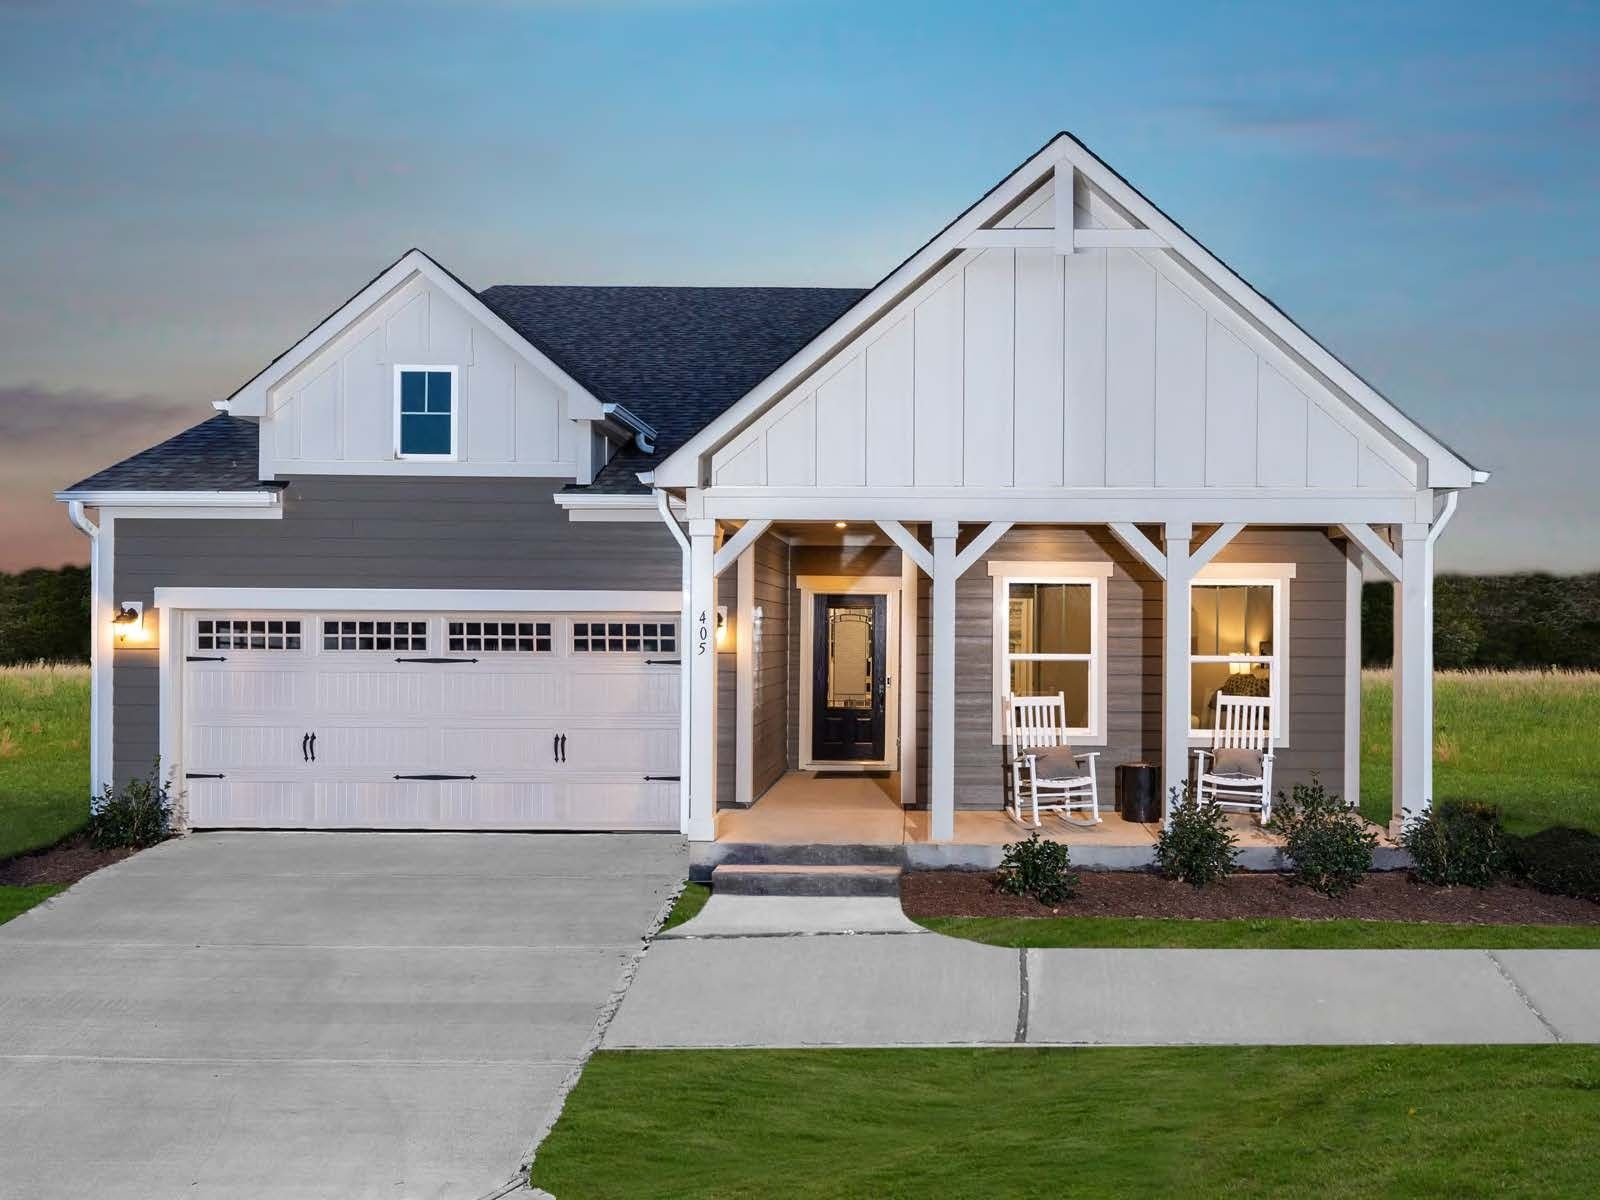 12 Oaks - The Enclave Collection,27540